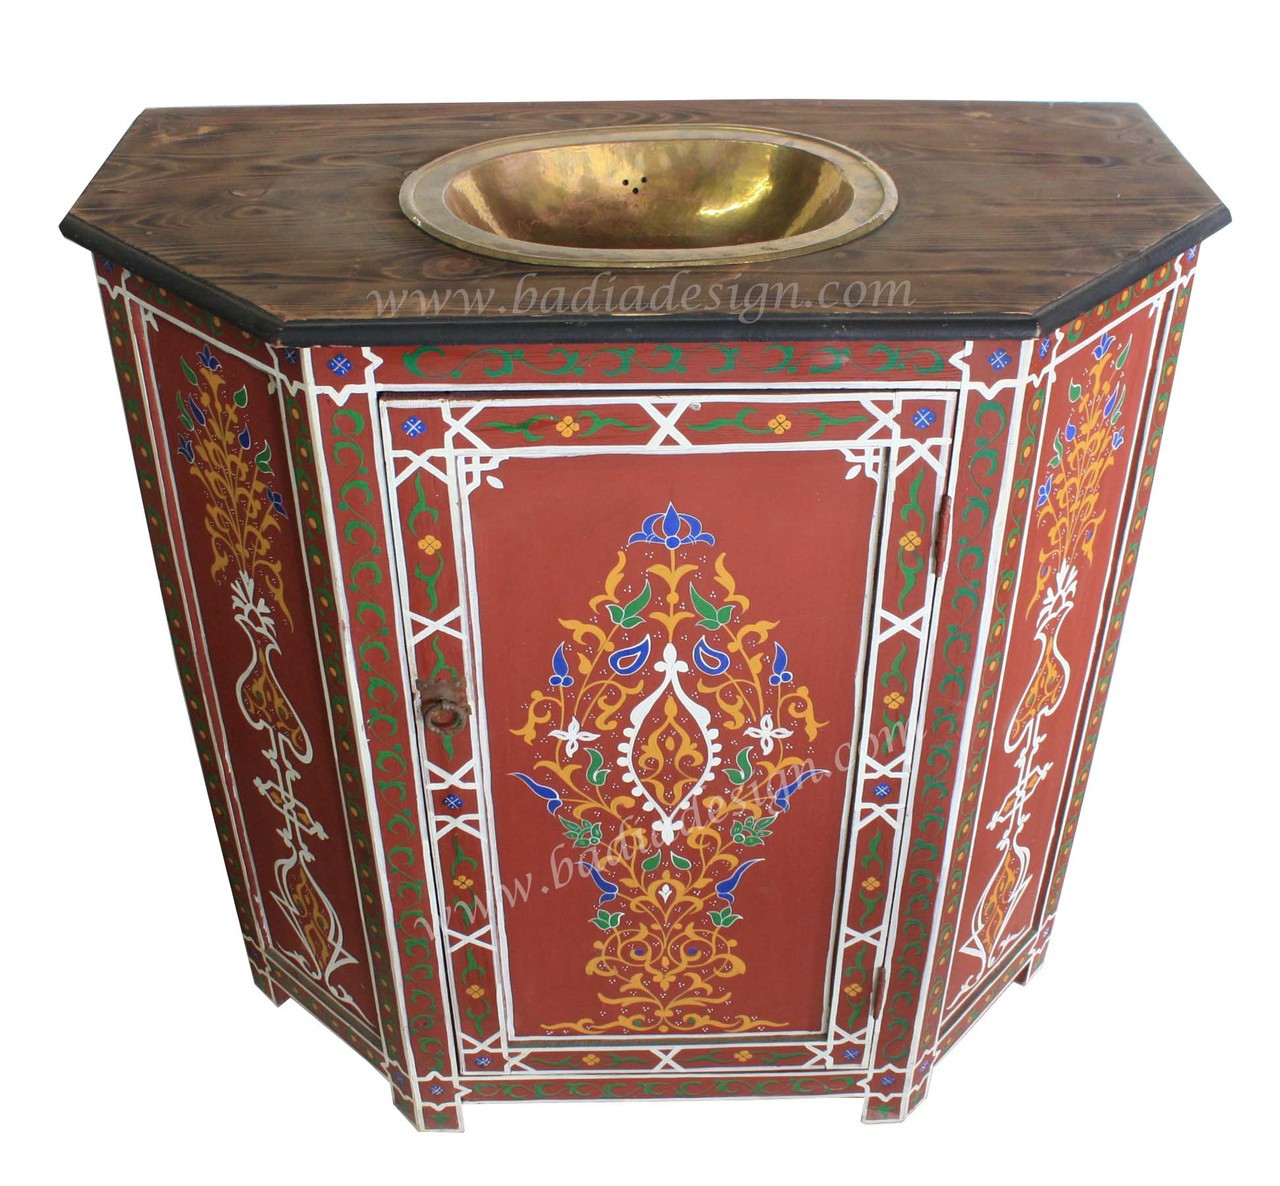 Moroccan Hand Painted Wooden Bathroom Vanity With Sink From Badia Design Inc